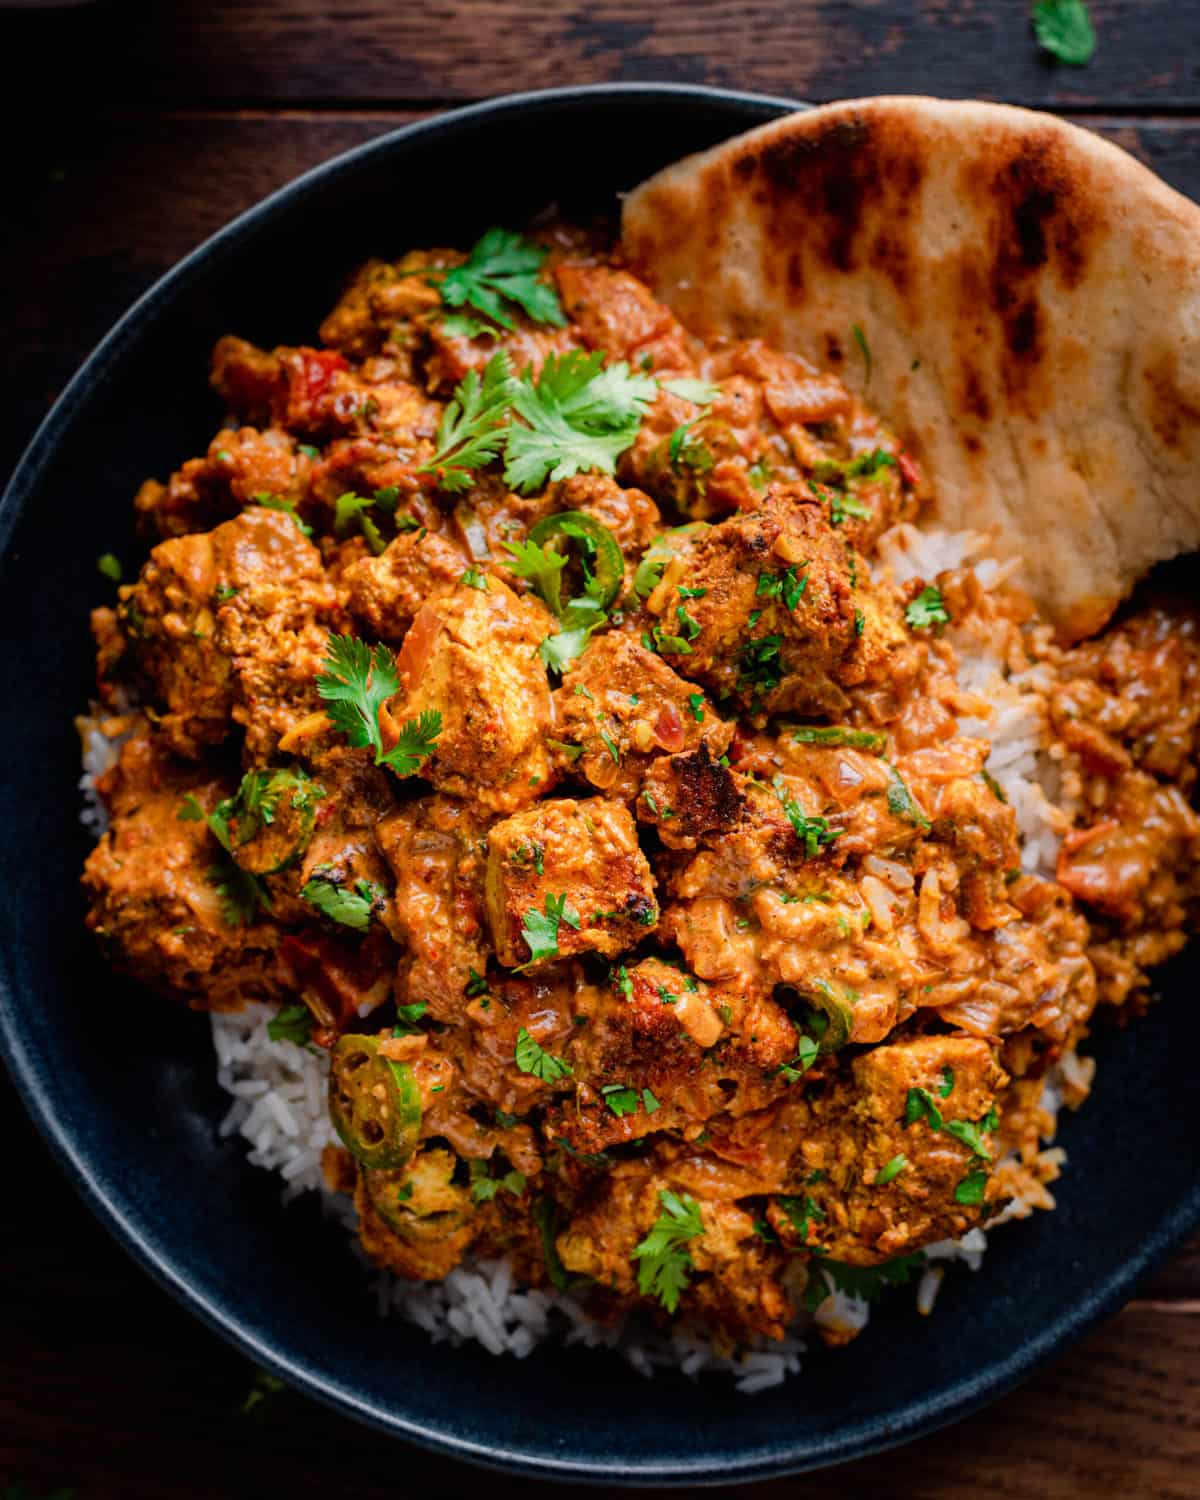 tofu tikka masala served over rice with naan in a bowl